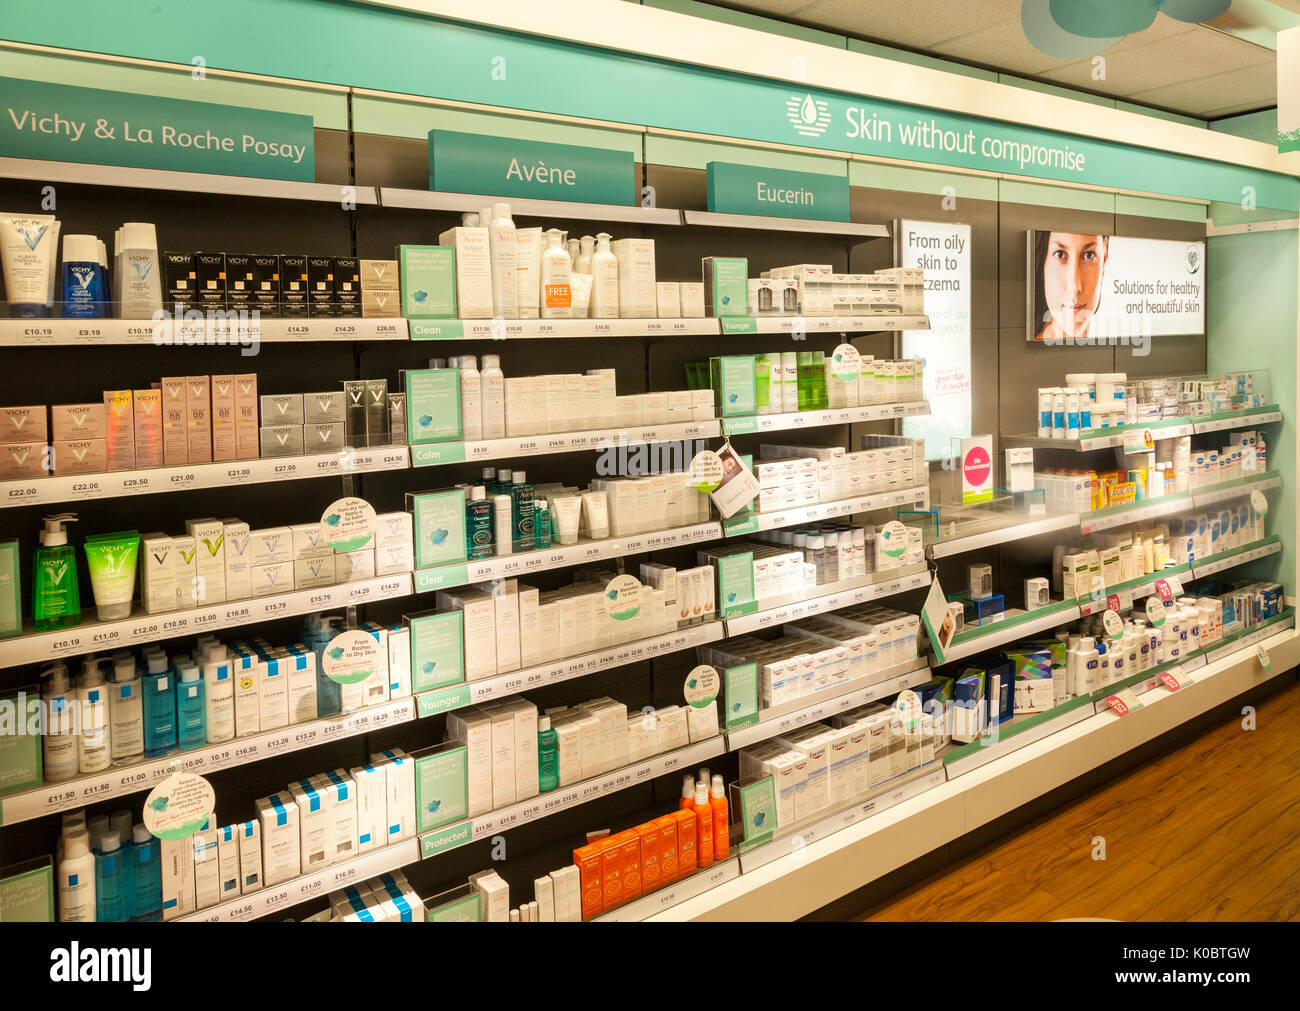 Skin care and beauty products on display in a chemist shop,pharmacy shelf,pharmacists,drug store - Stock Image